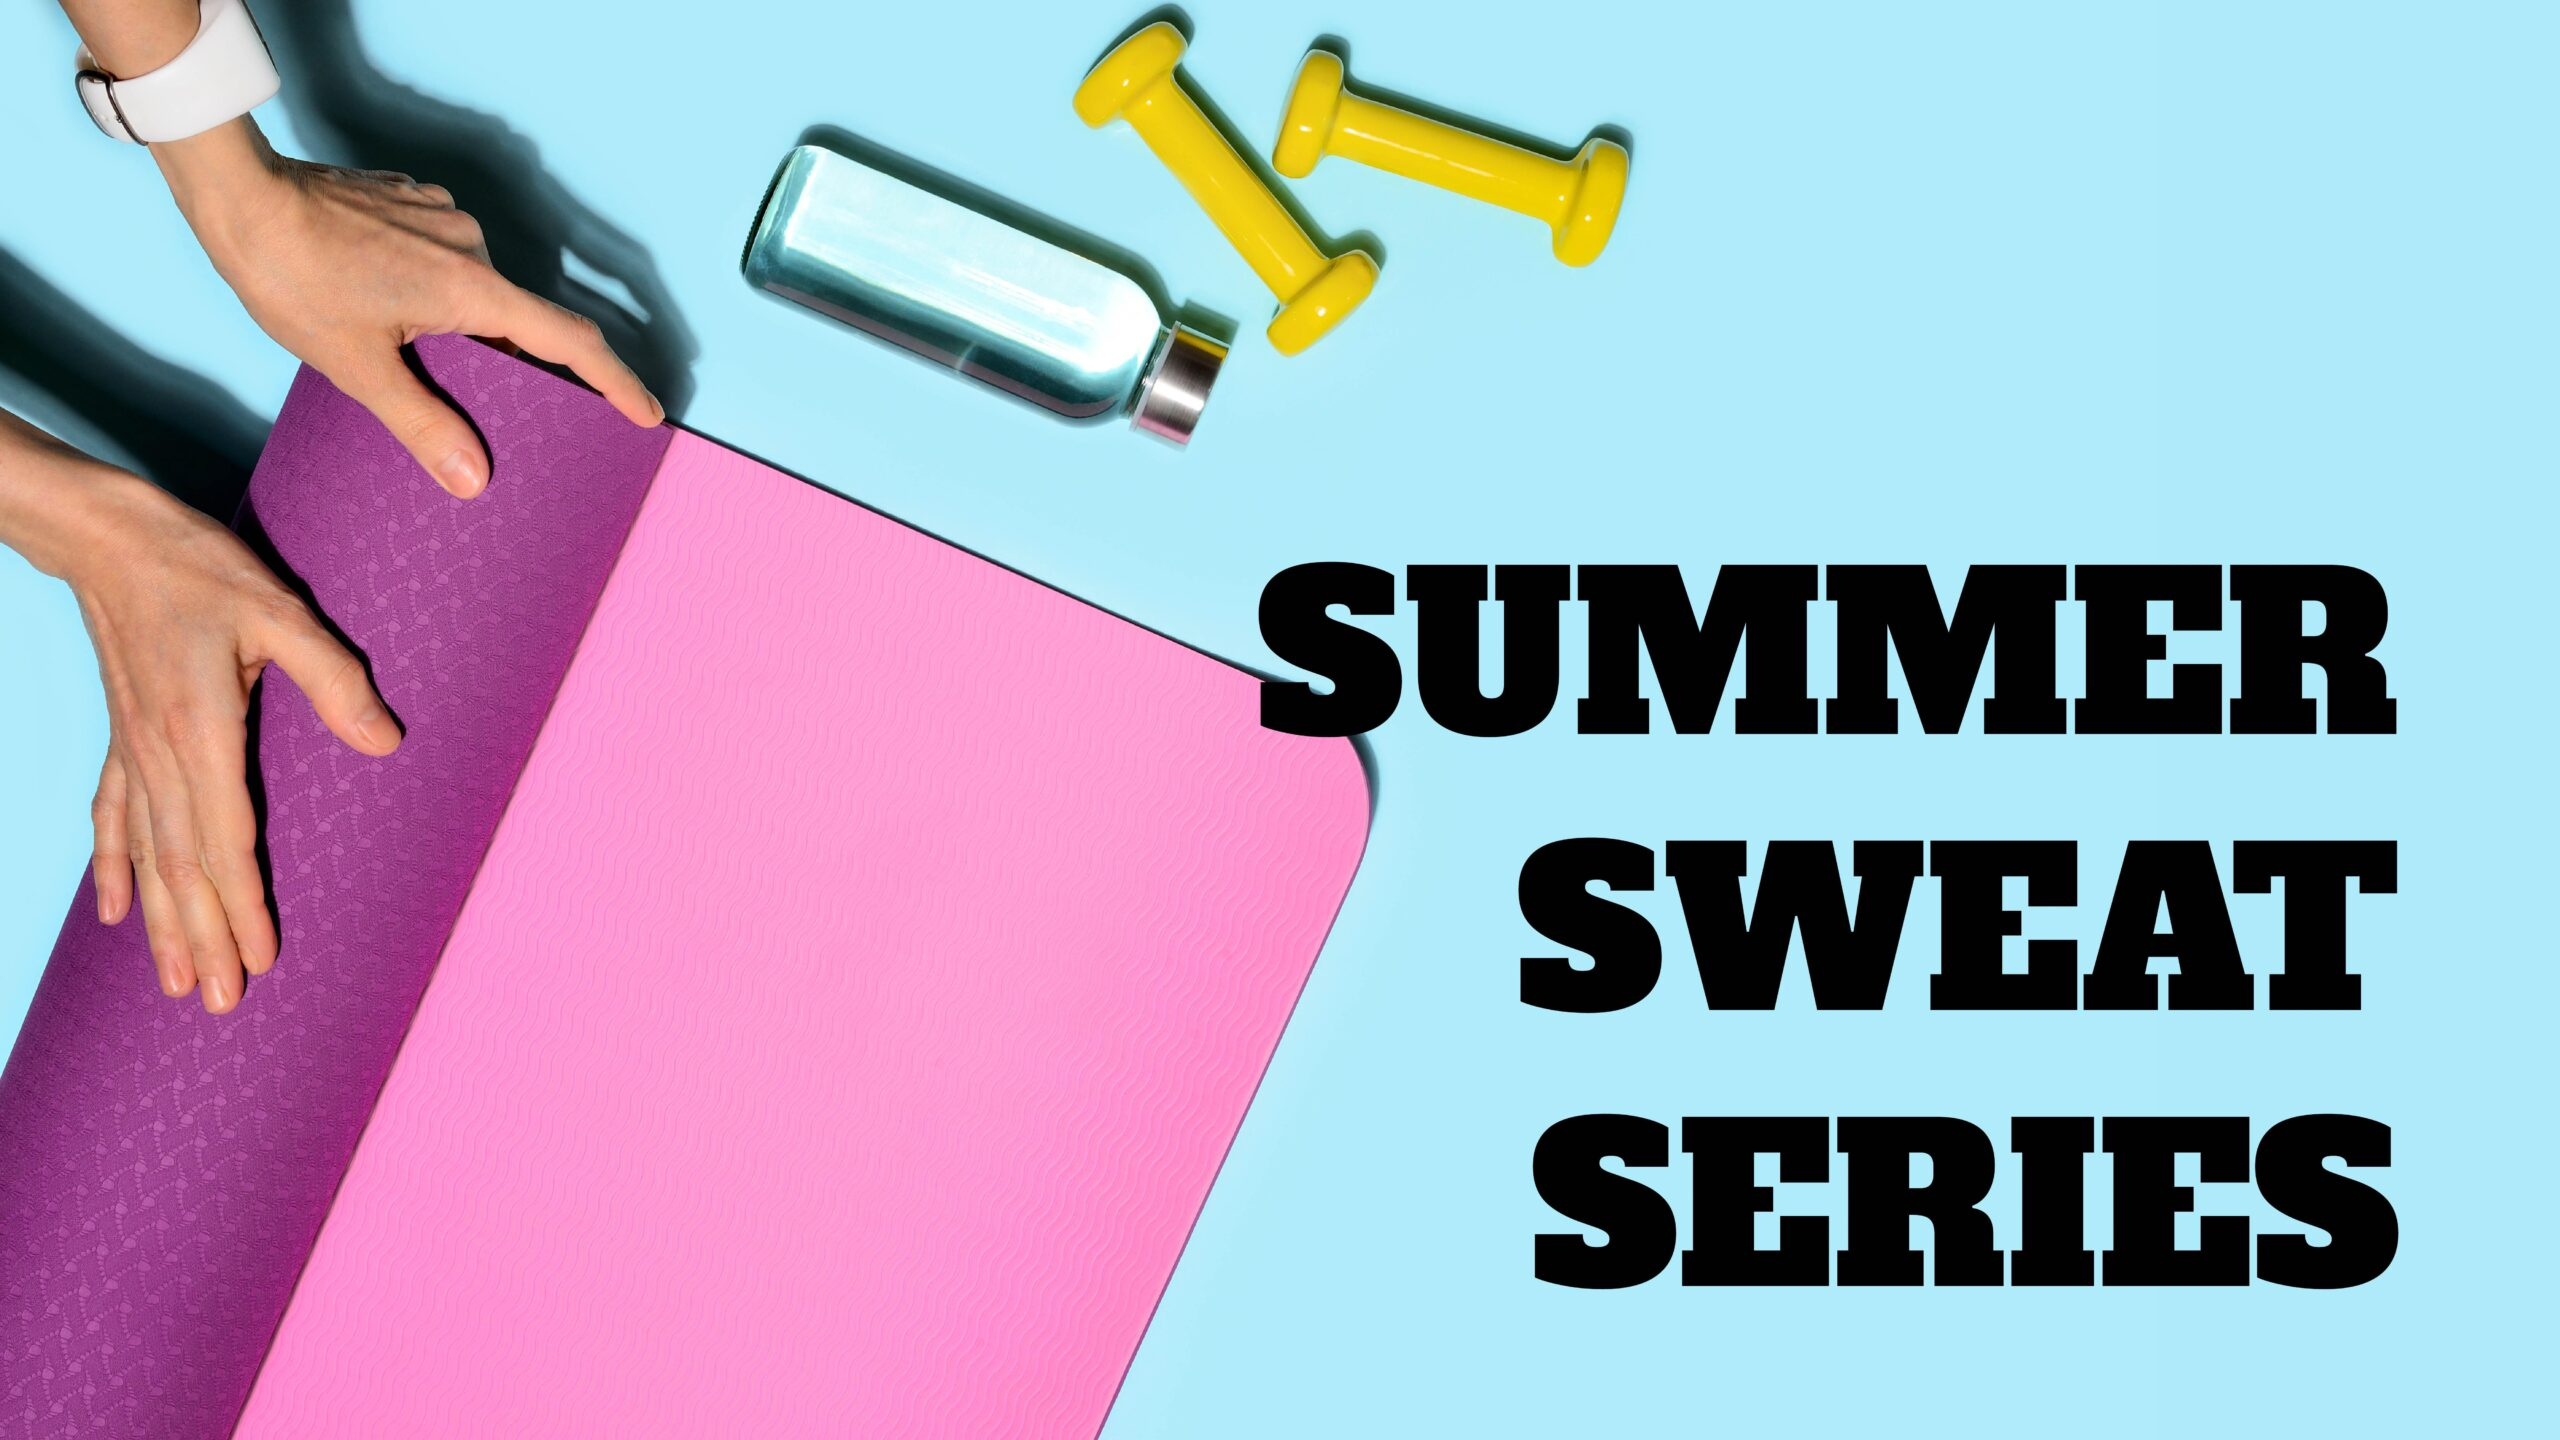 Summer Sweat Series: Free Cardio Kick & Dance Class - Mall at Johnson City 1